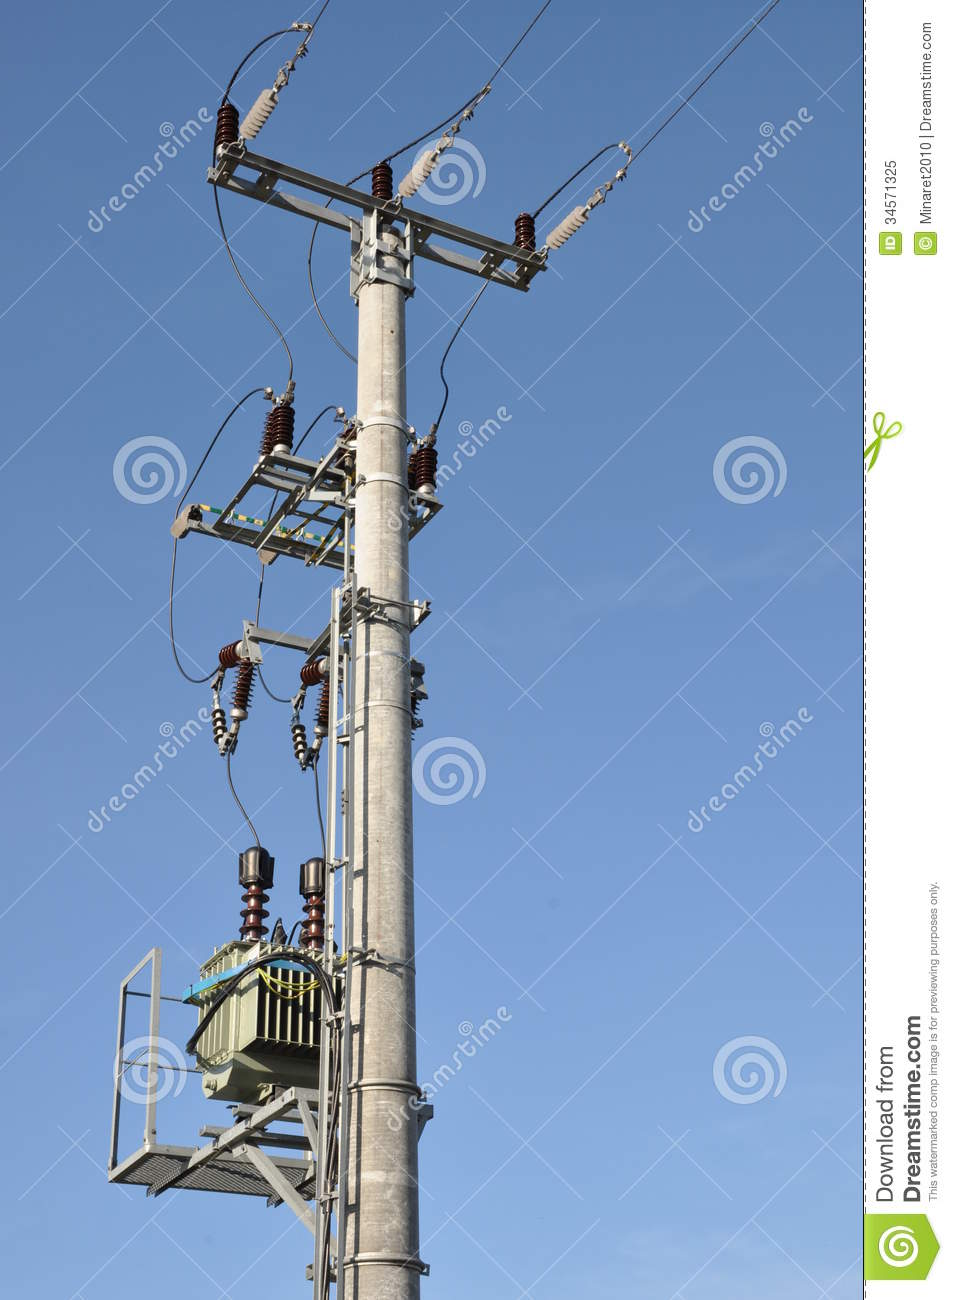 Electric Pole With A Transformer Royalty Free Stock Photo